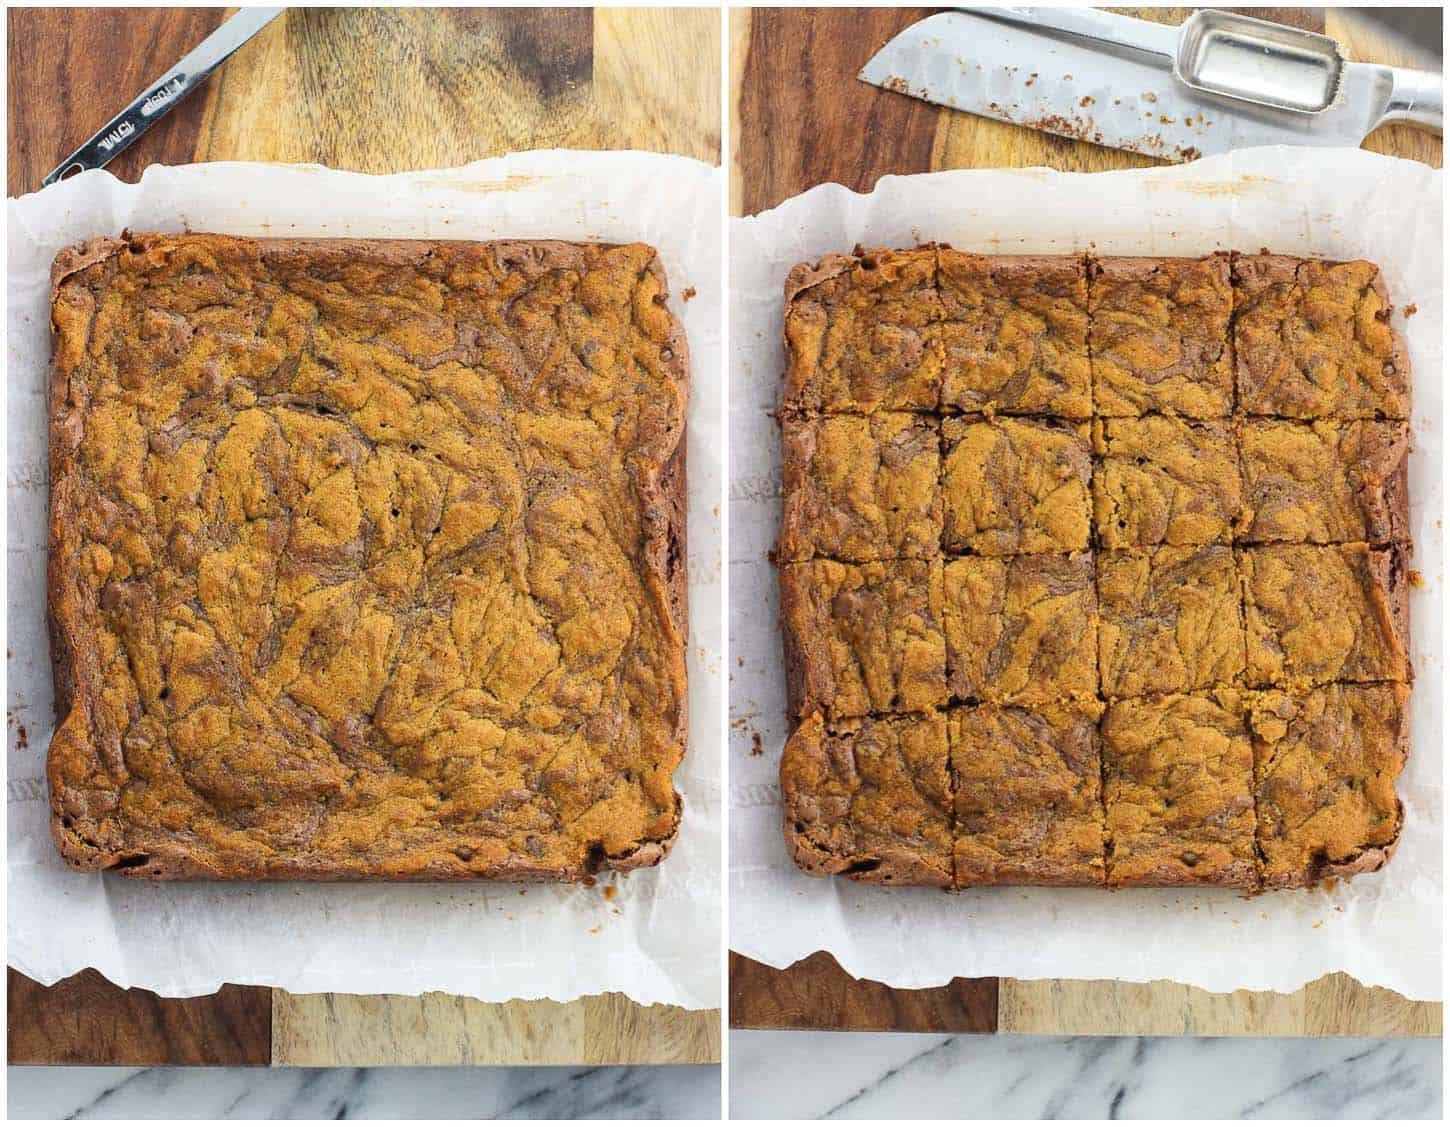 A side-by-side image collage of the slab of brownies on a cutting board before being sliced (left) and after being sliced into sixteen equal pieces (right)